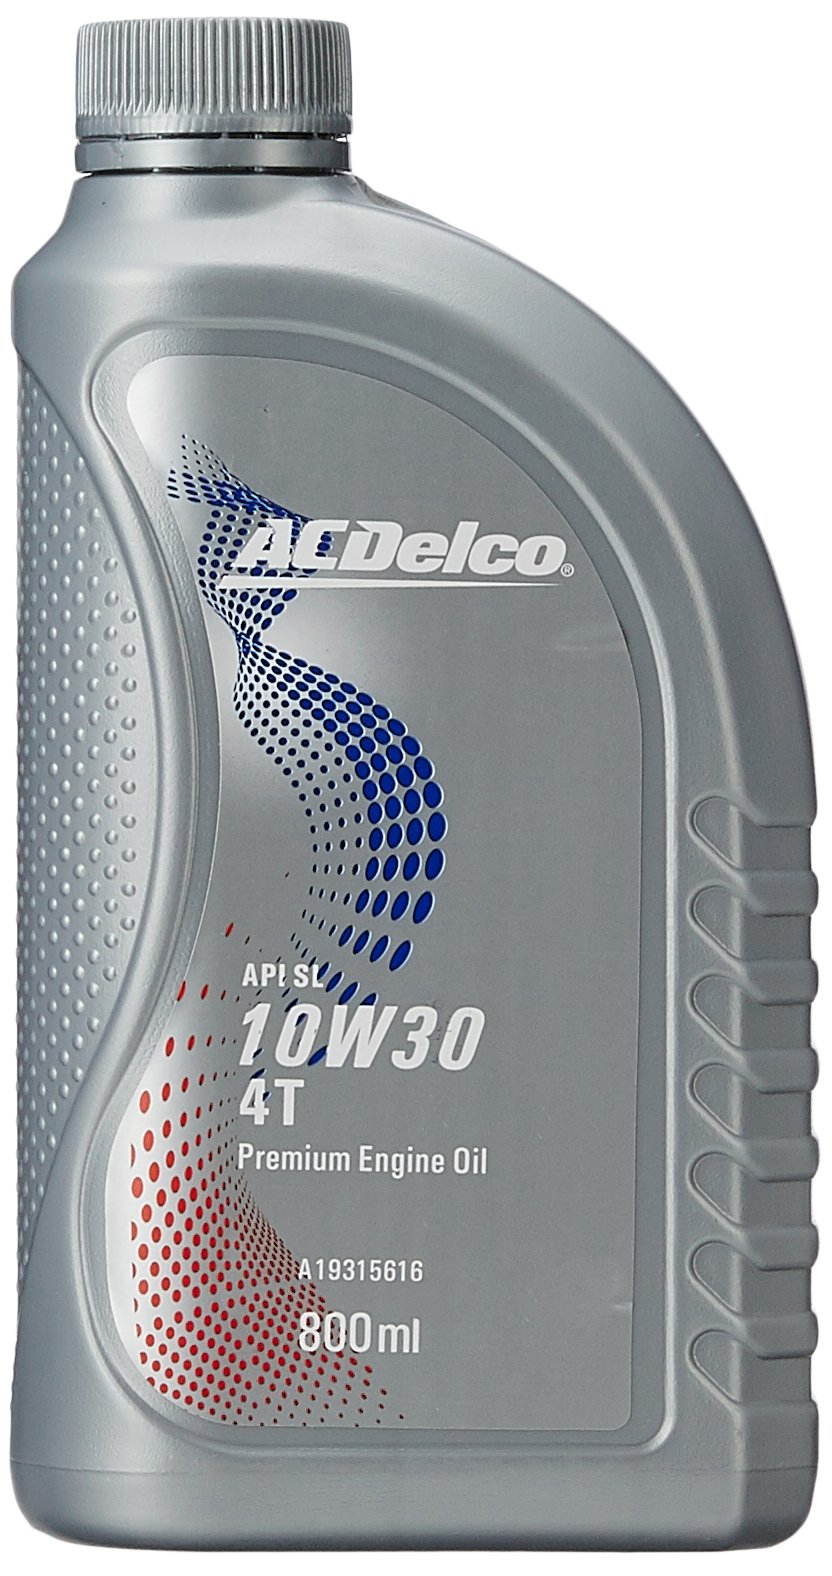 ACDelco A19315616 10W-30 API SL (JASO MA2) High Performance 4T Oil for Motorbikes (800 ML) product image